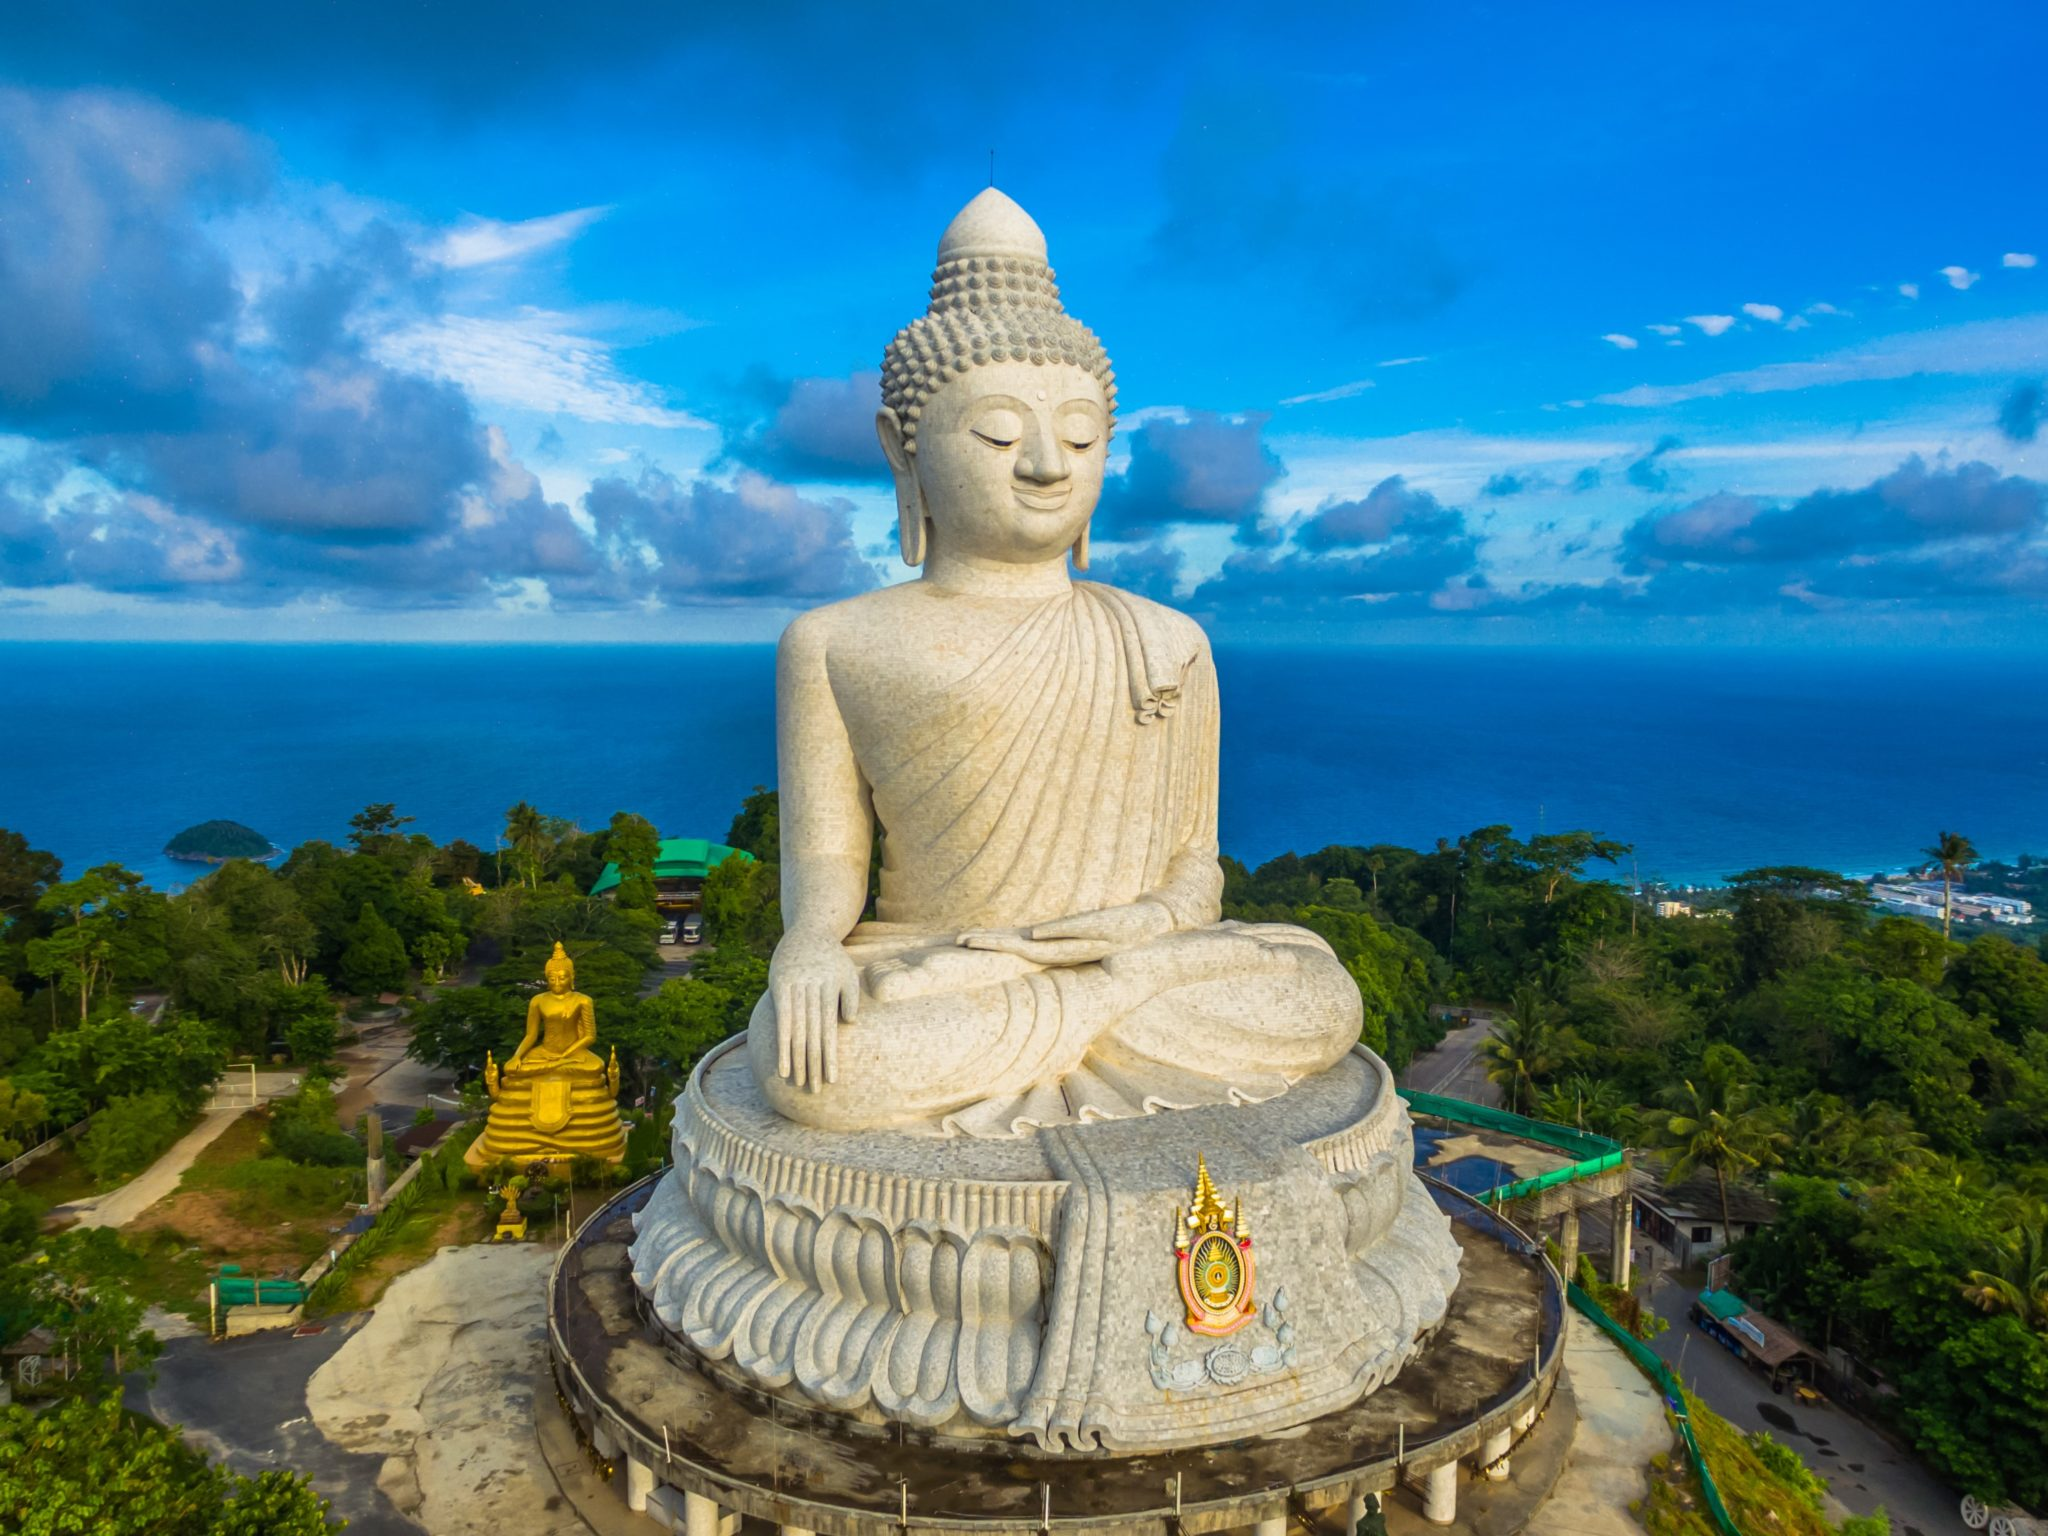 City Tour Phuket (Big Buddha, Promthep Cape, Chalong Templo, Phuket Old Town, Monkey Hill..)